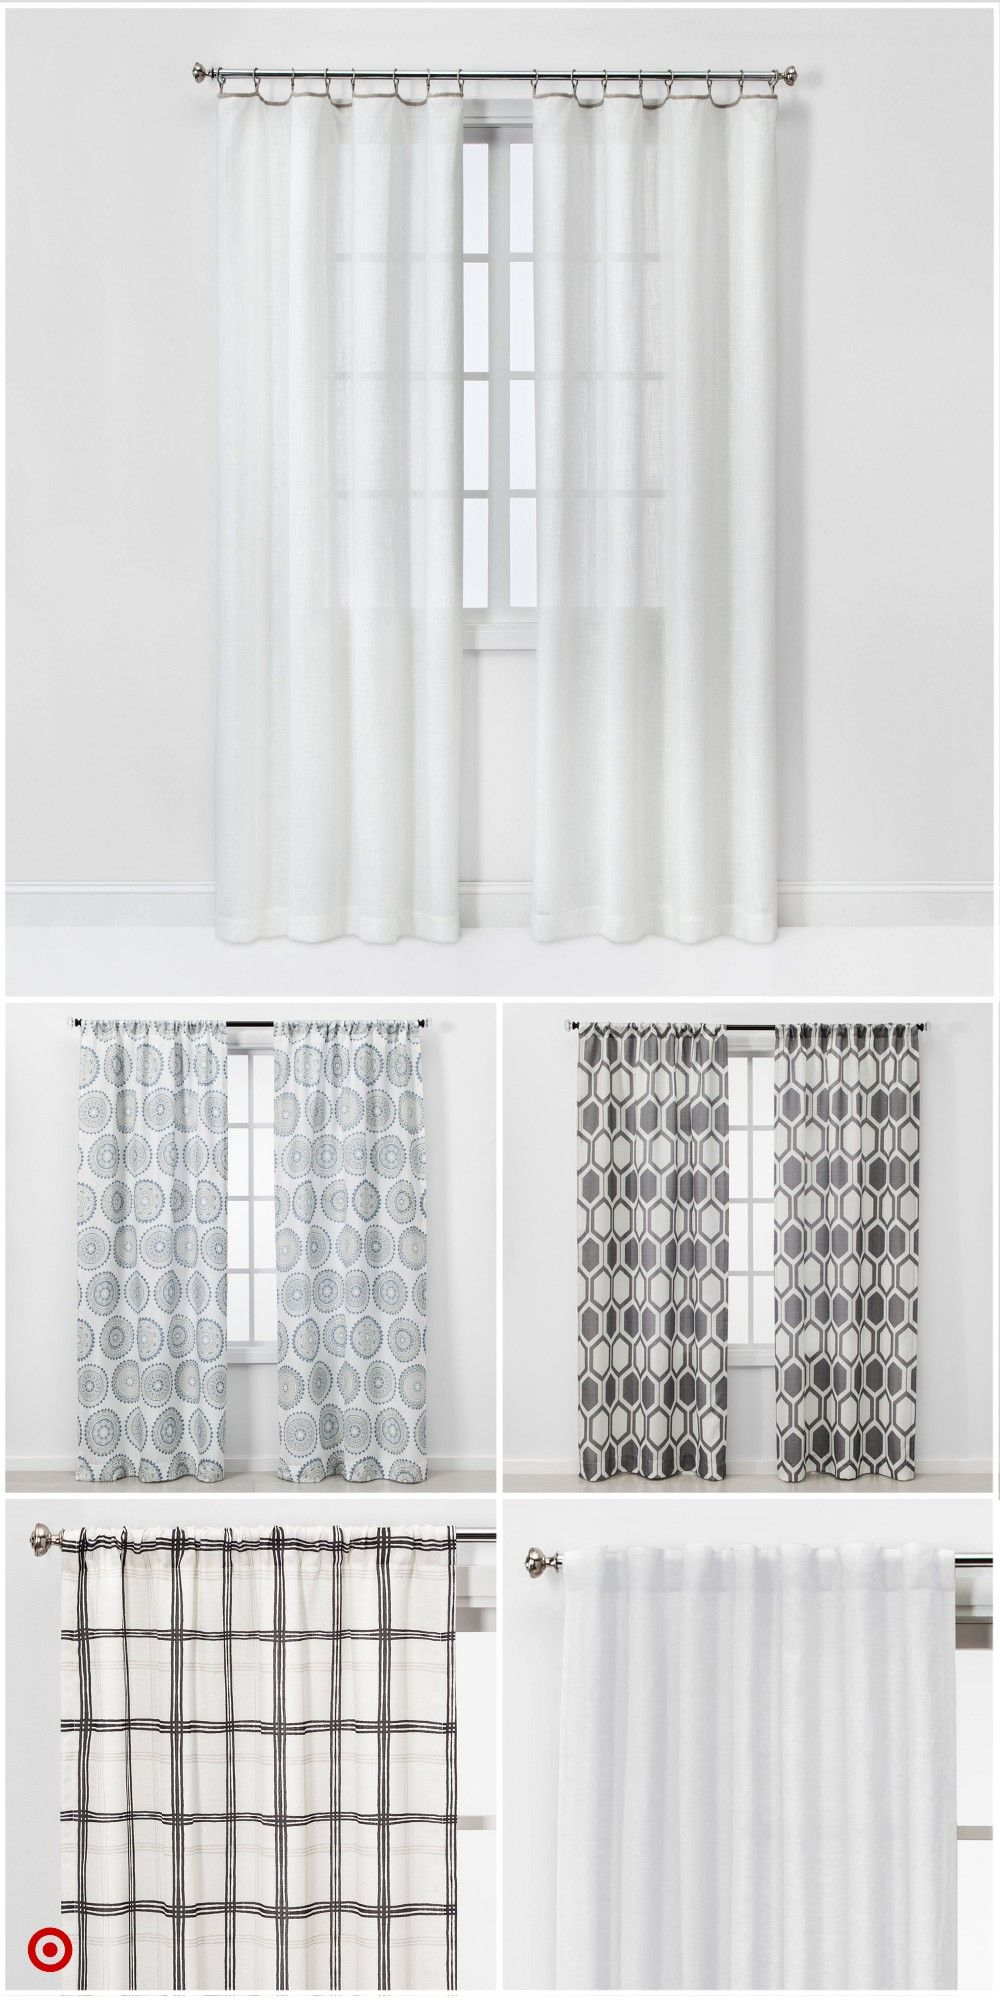 Shop Target For Curtain Panels You Will Love At Great Low Prices Free Shipping On Orders Of 35 Farmhouse Decor Living Room Vintage Industrial Decor Curtains